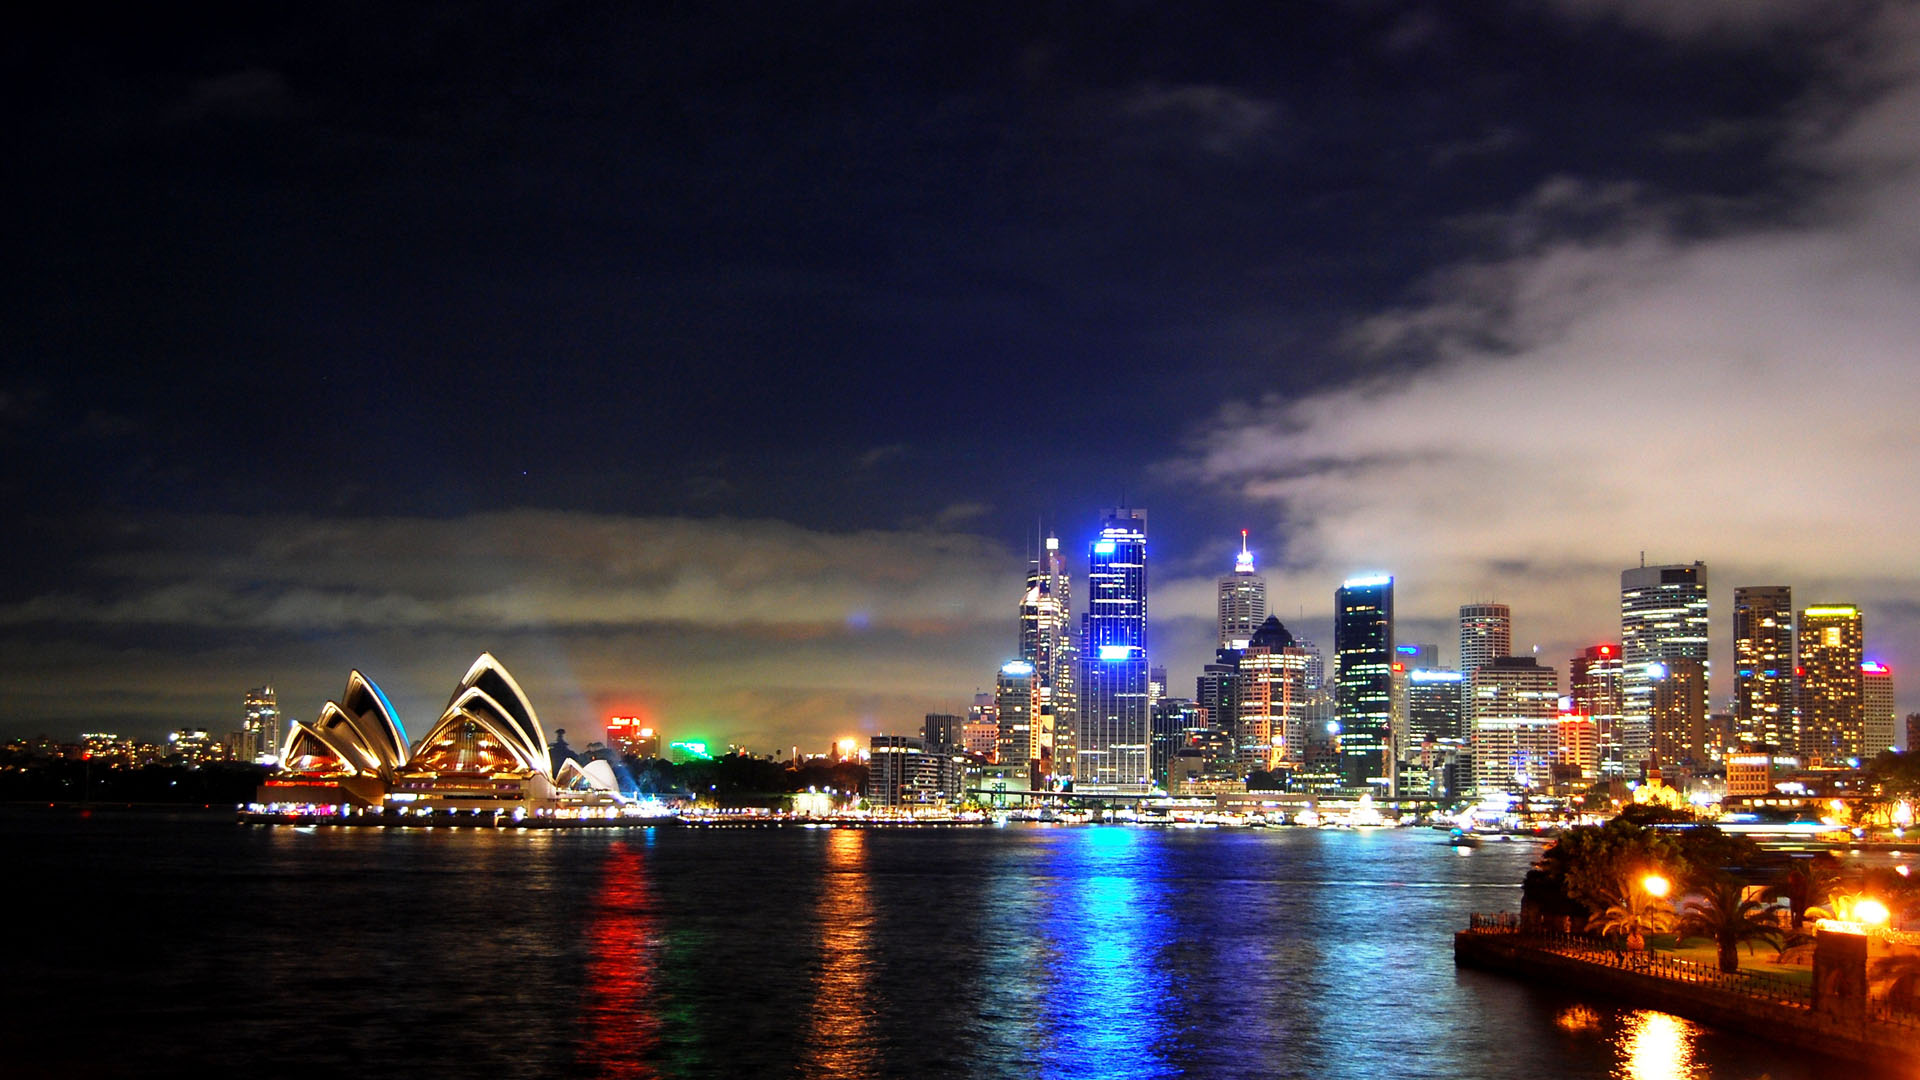 Sydney Harbour bei Nacht Wallpaper